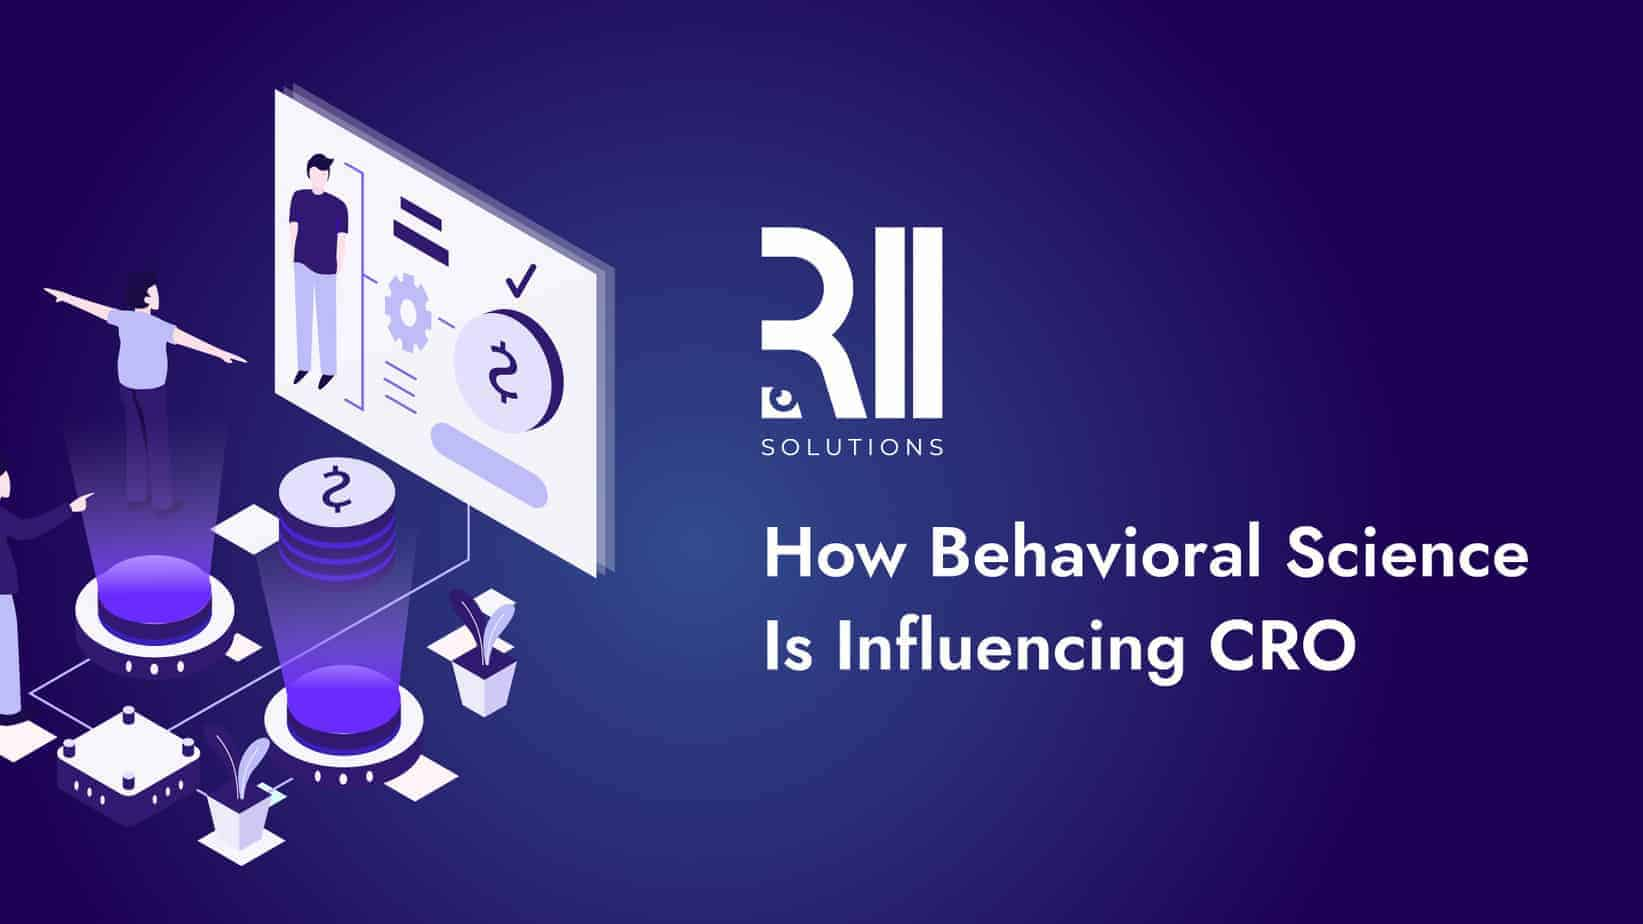 How Behavioral Science Is Influencing CRO (Conversion Rate Optimization)